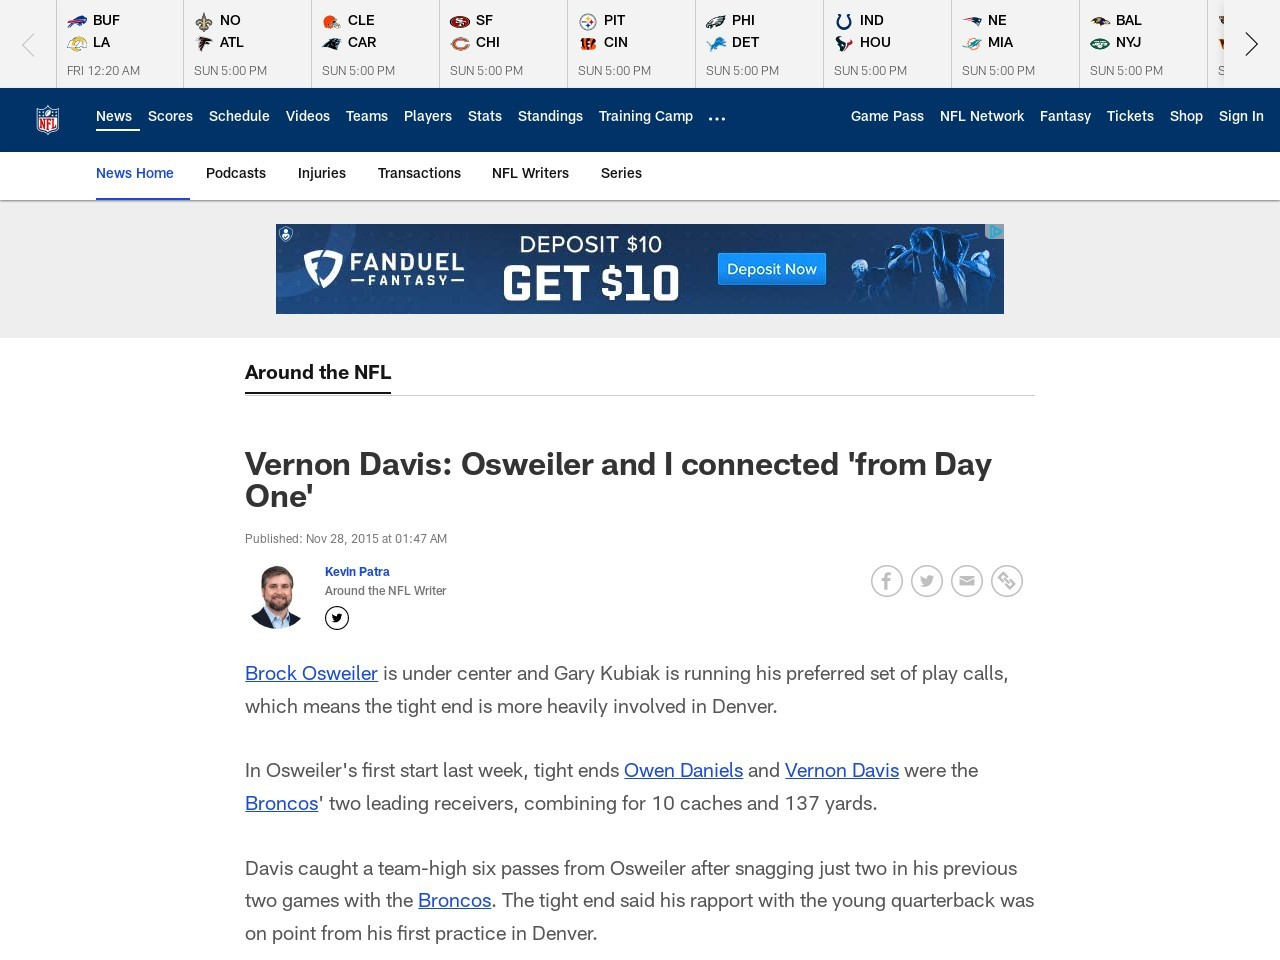 Vernon Davis: Osweiler and I connected 'from Day One'